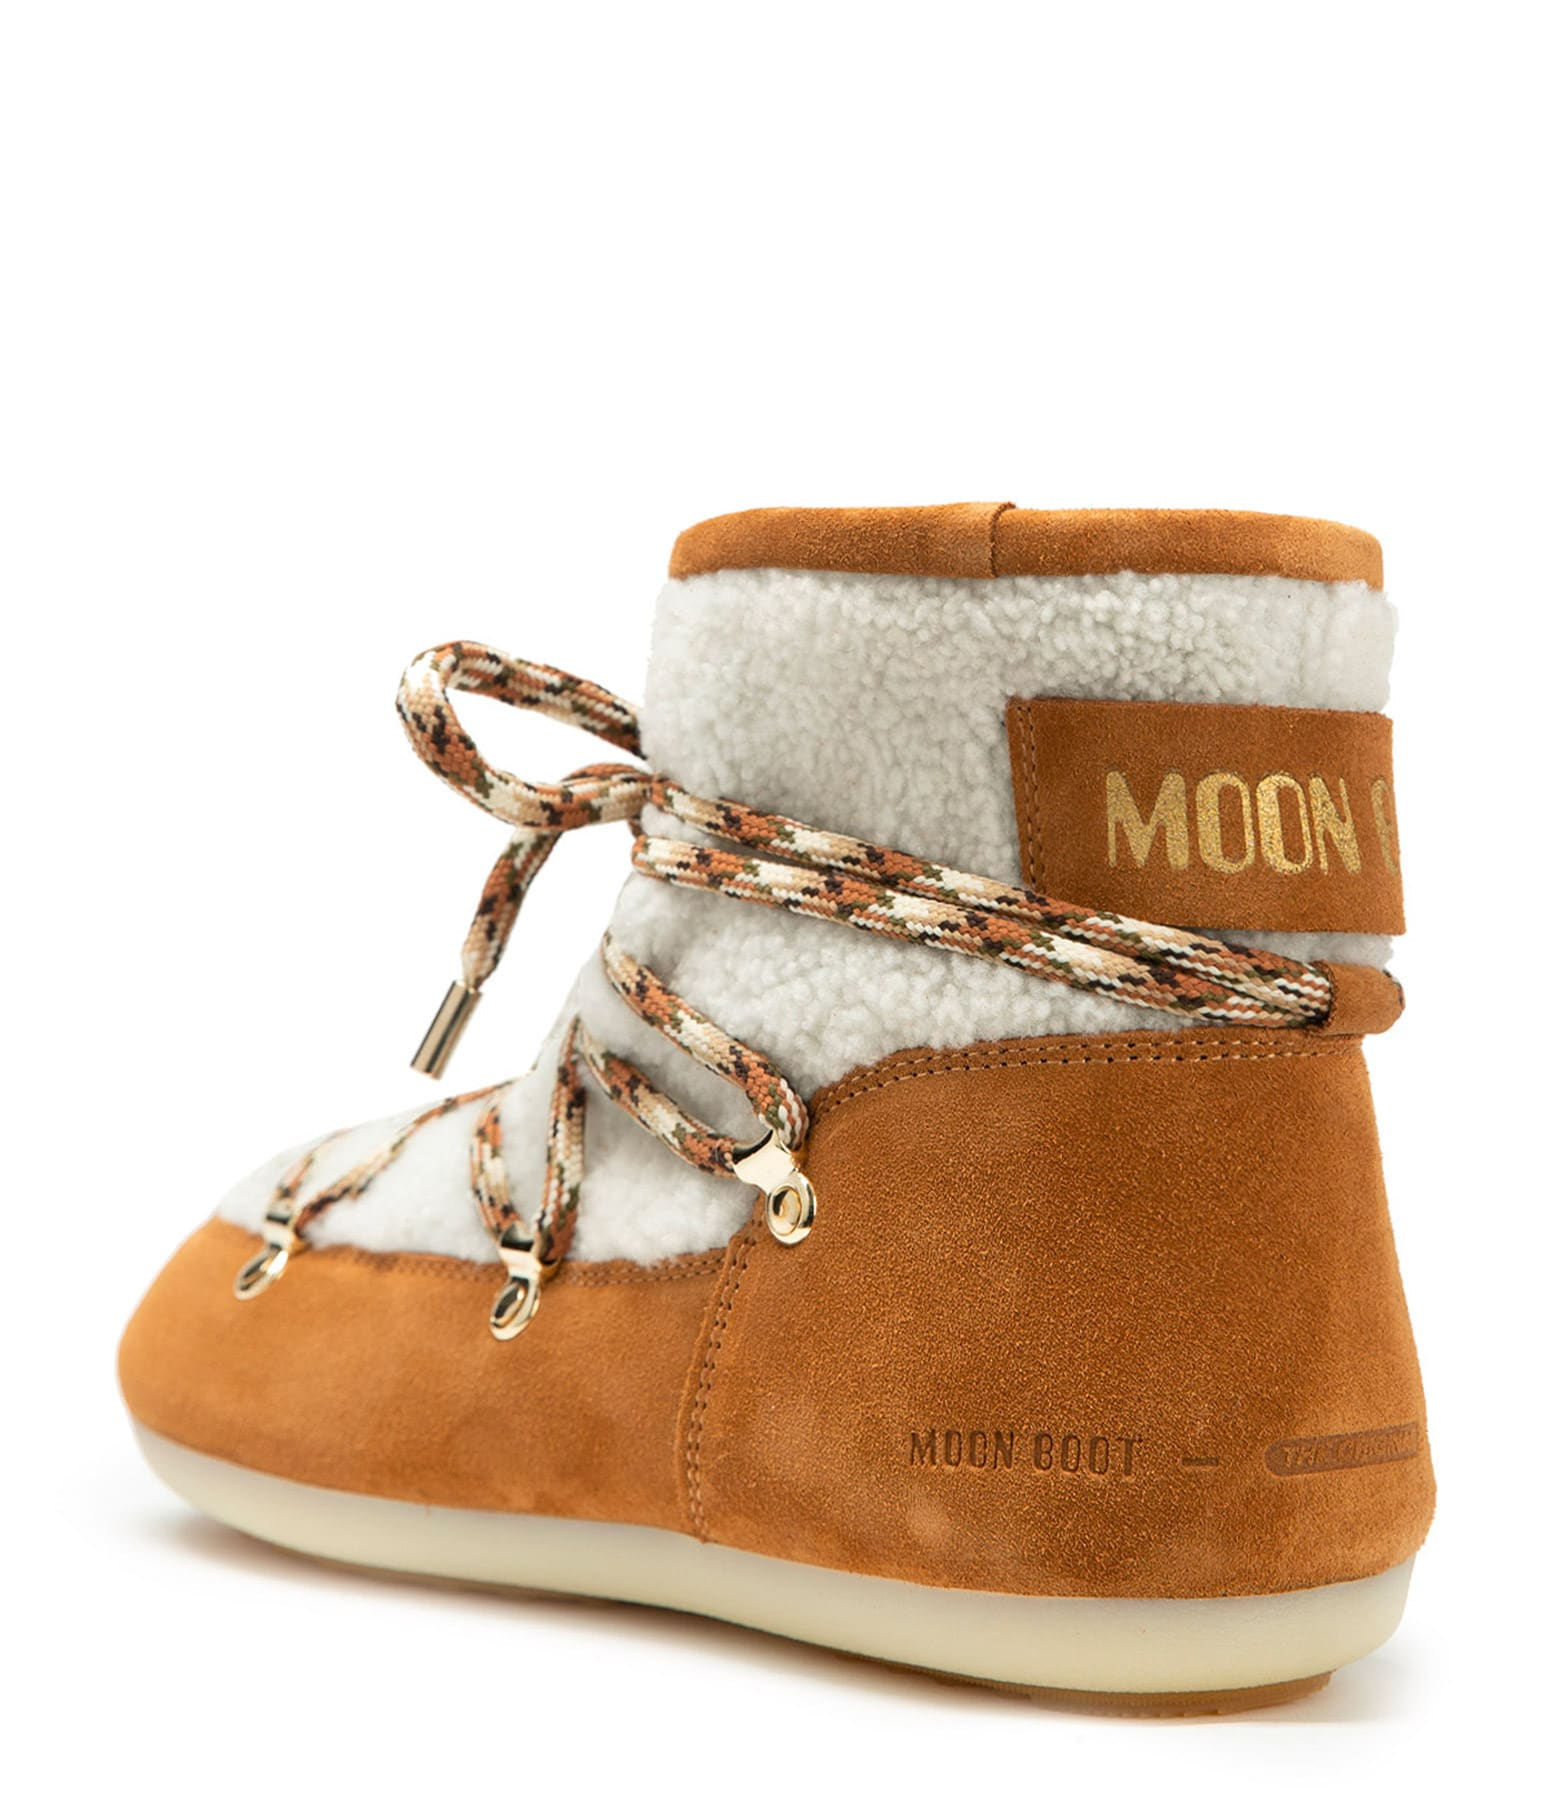 MOON BOOT - Moon Boot Basses DK Side Whisky Beige